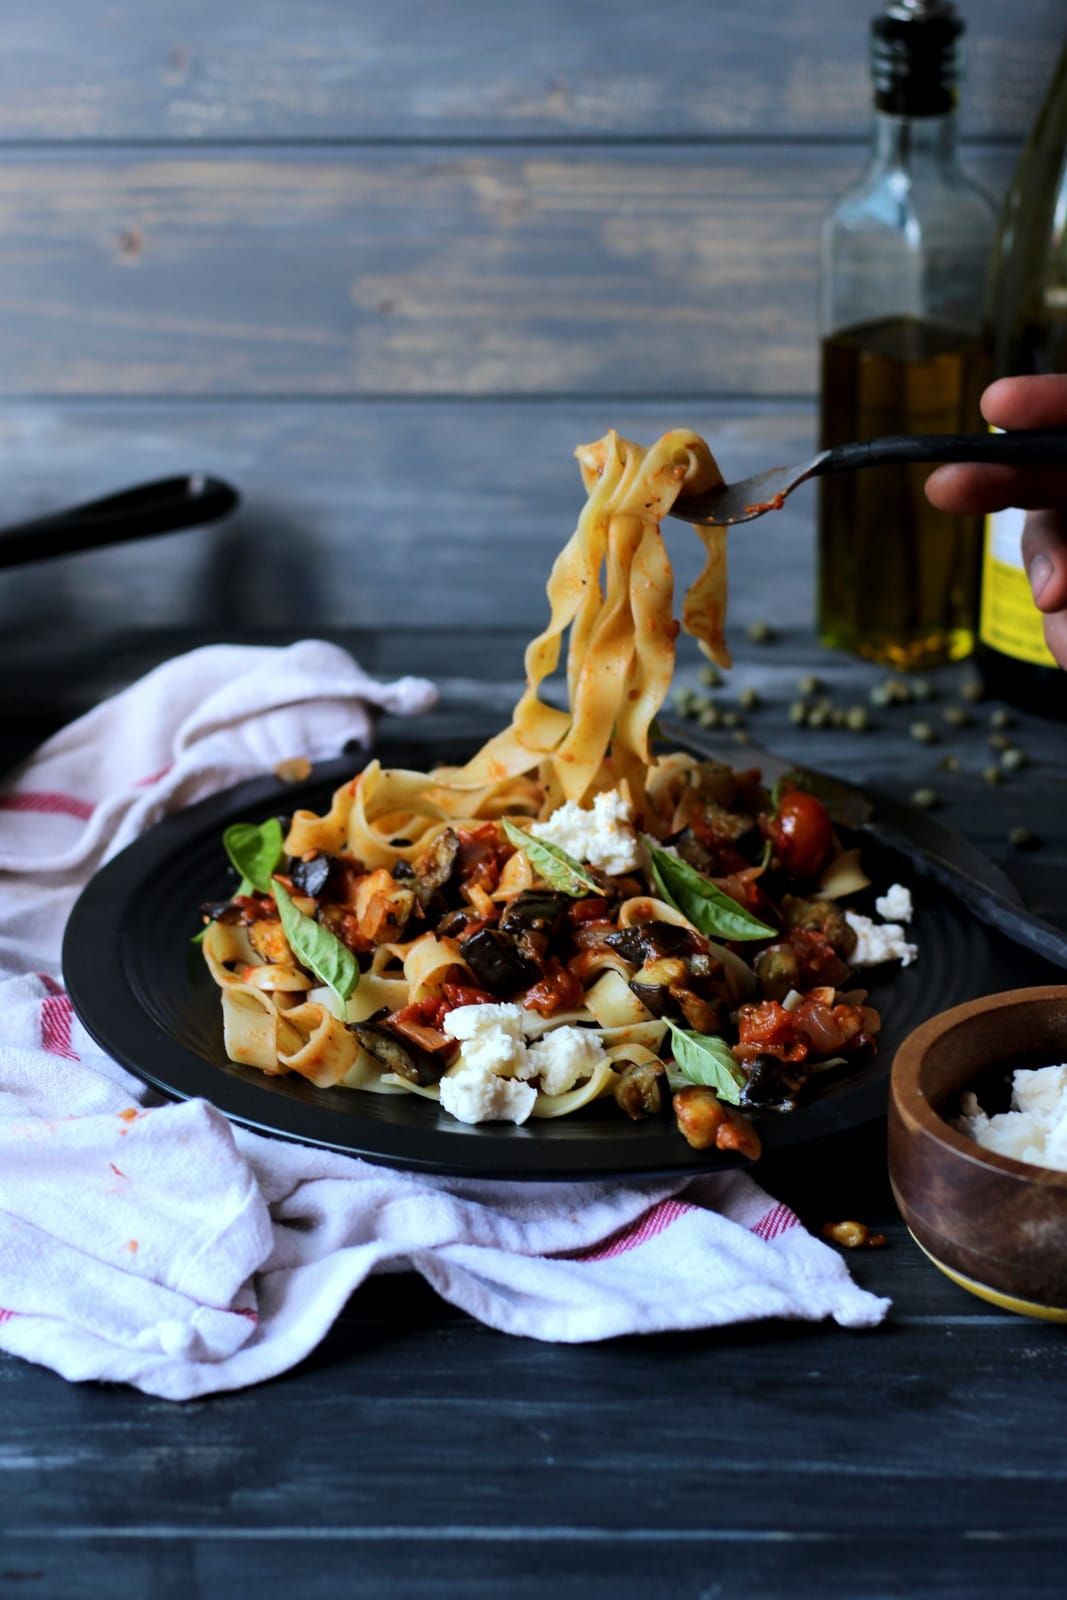 Roasted Eggplant Rague + Pappardelle Pasta - thewoodenskillet.com #meatless #pastanight